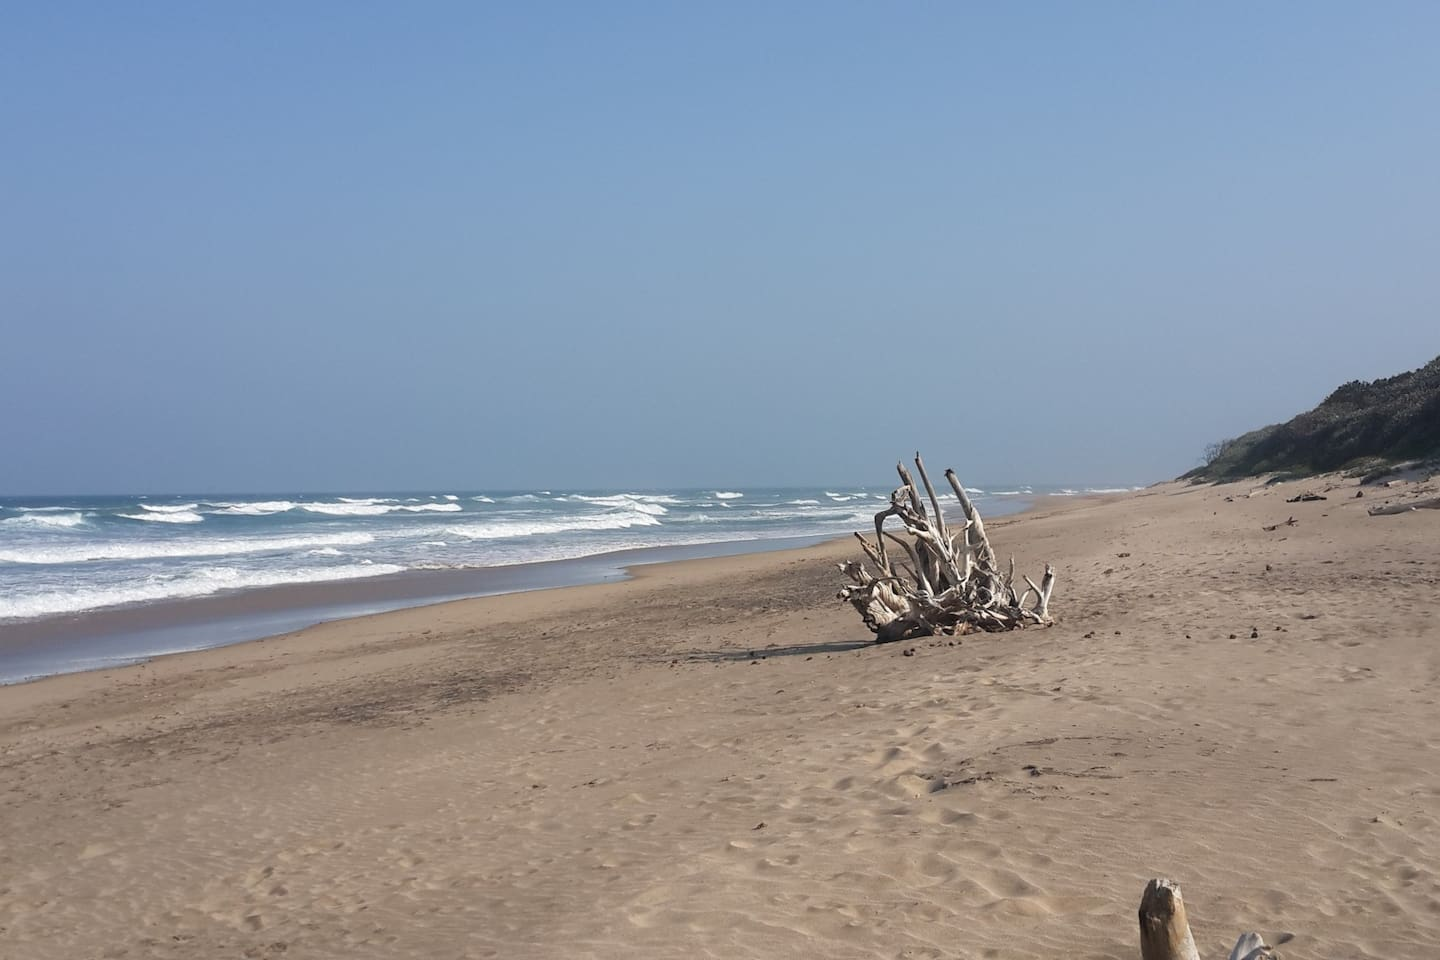 Pristine beaches with fine white sand 7 mins walk from house